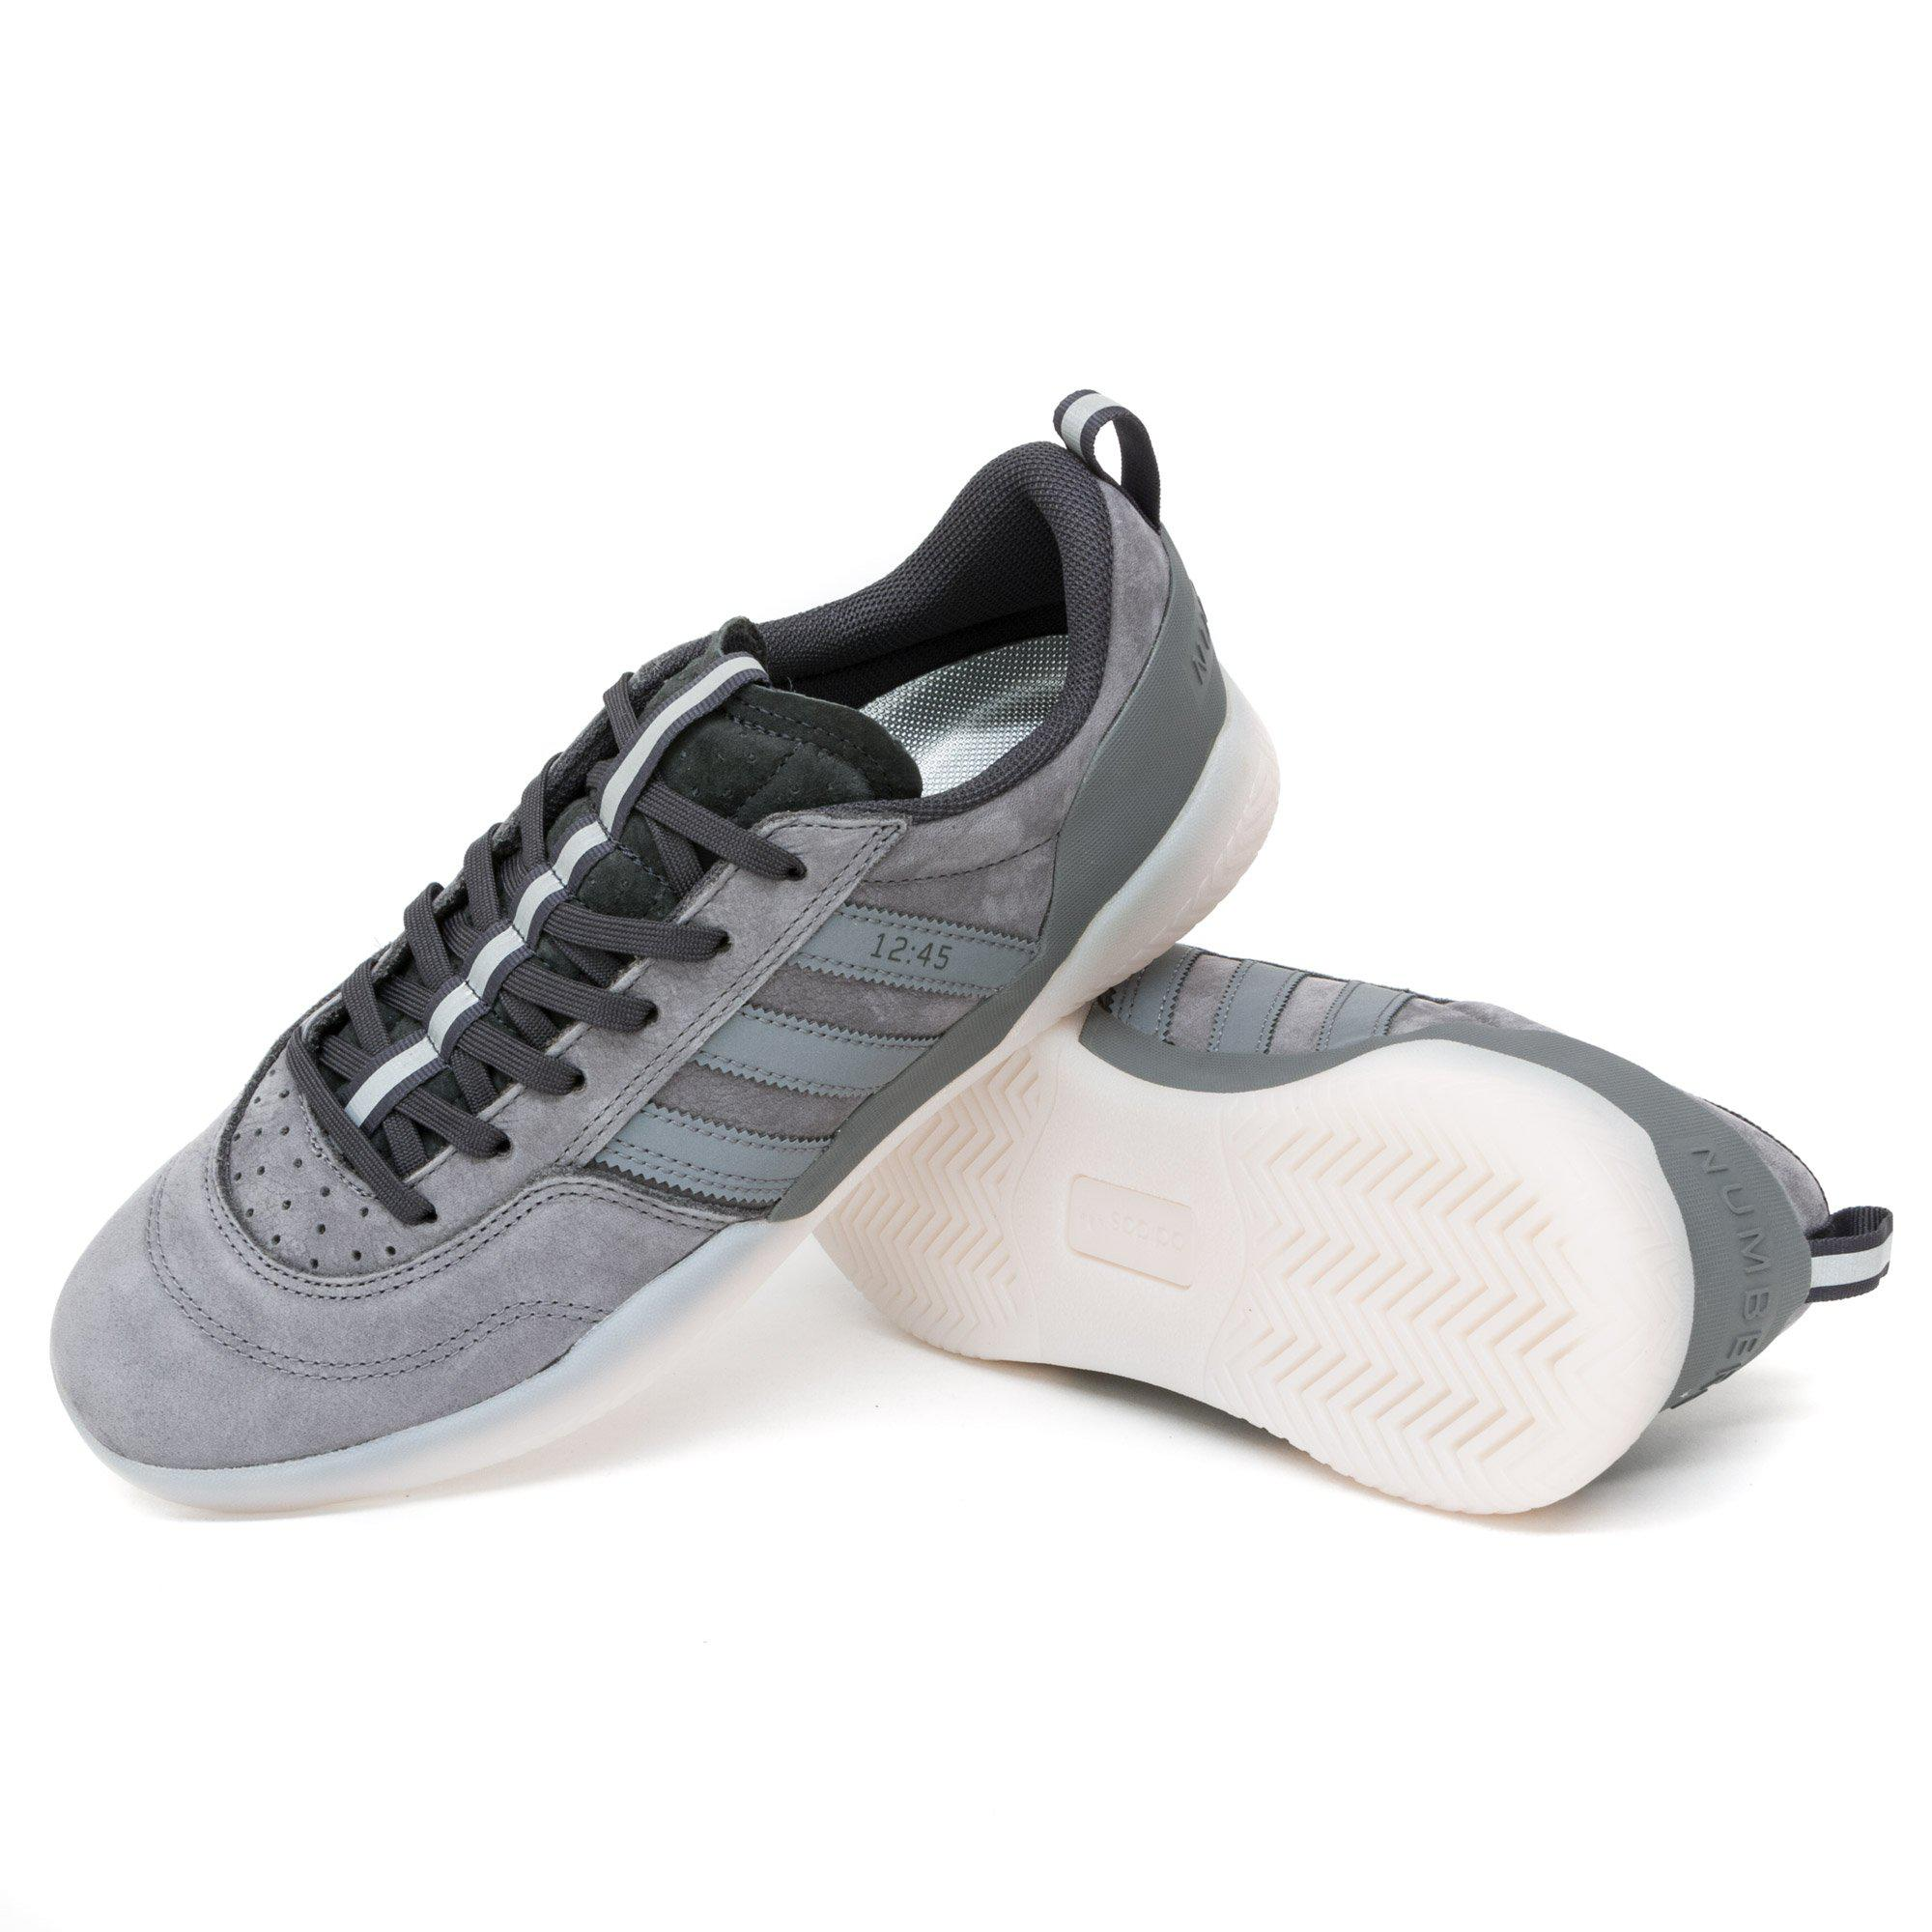 adidas Leather City Cup X Numbers Shoes